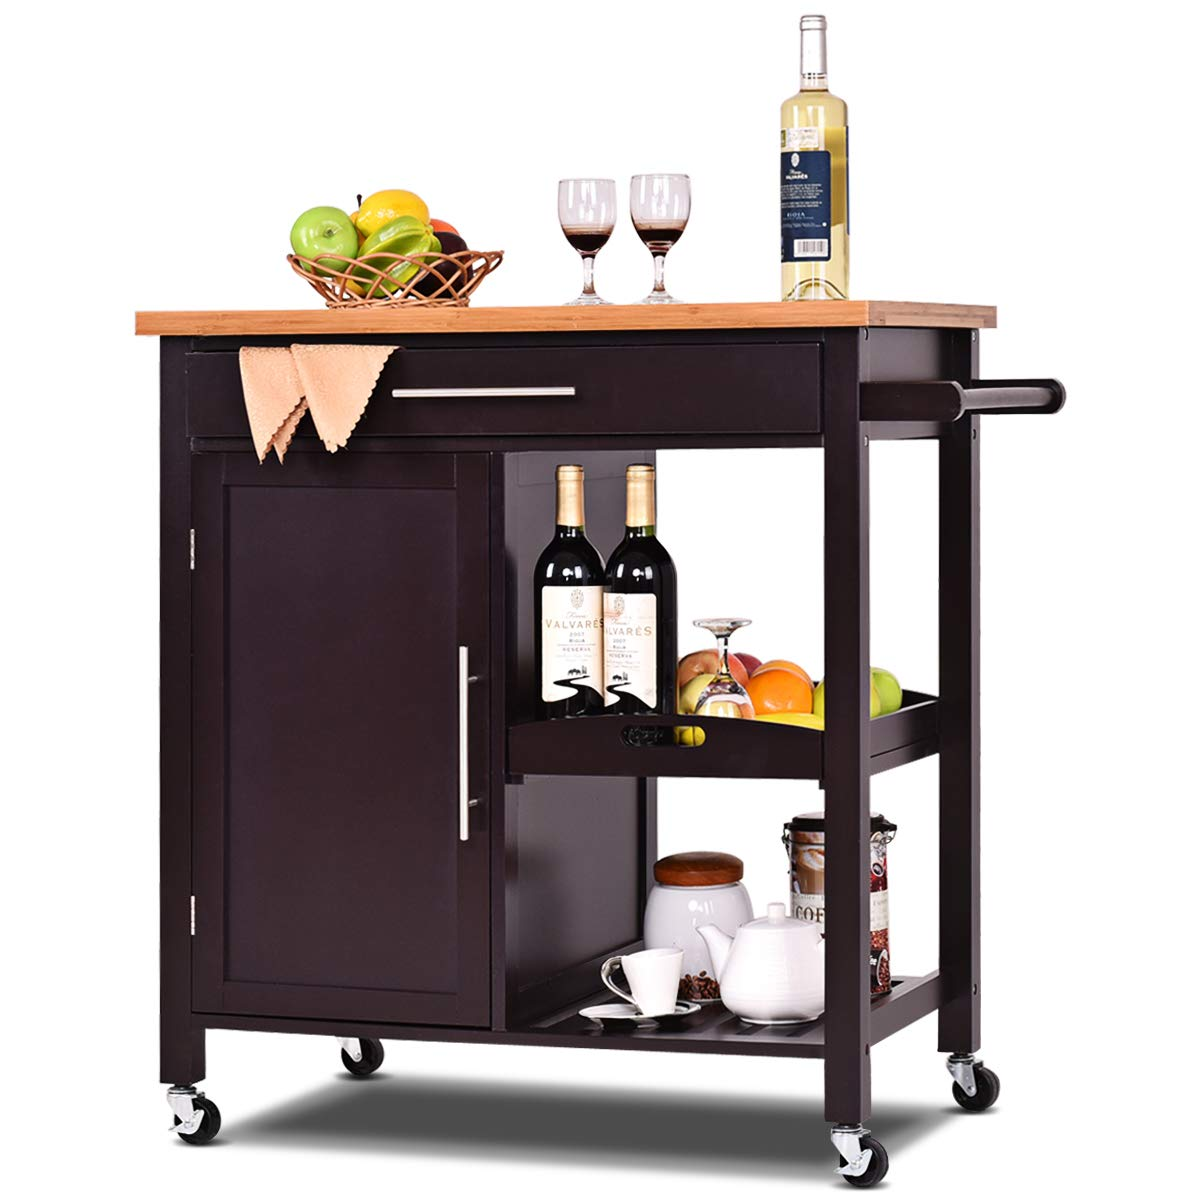 Giantex Kitchen Trolley Cart Wood Rolling Island Cart Home Restaurant Kitchen Dining Room Serving Utility Cart w/Bamboo Top Storage Cabinet Bigger Drawer Removable Tray Shelf, Brown by Giantex (Image #1)